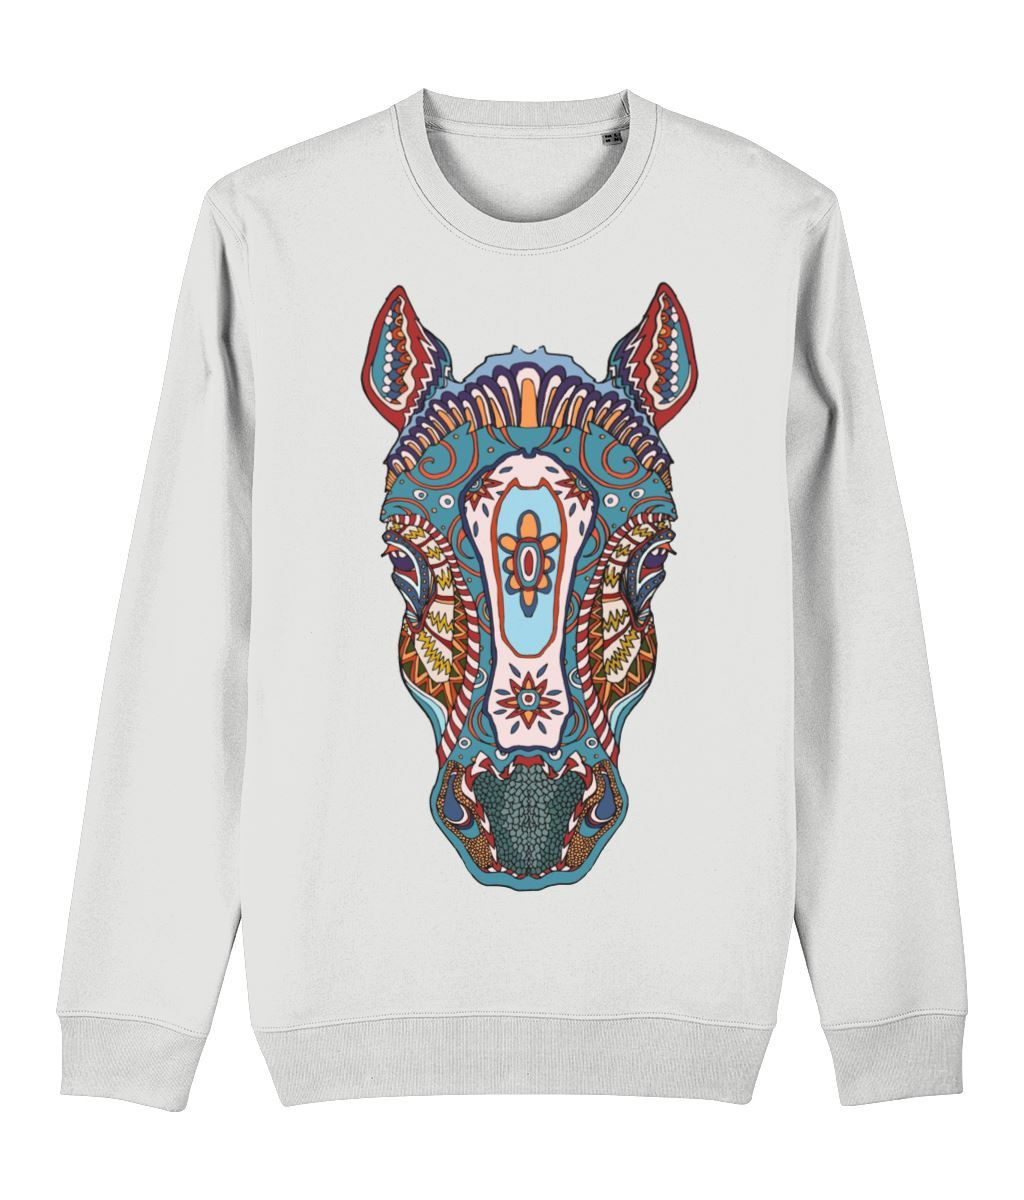 Ethnic Horse Sweatshirt Clothing IndianBelieves White X-Small